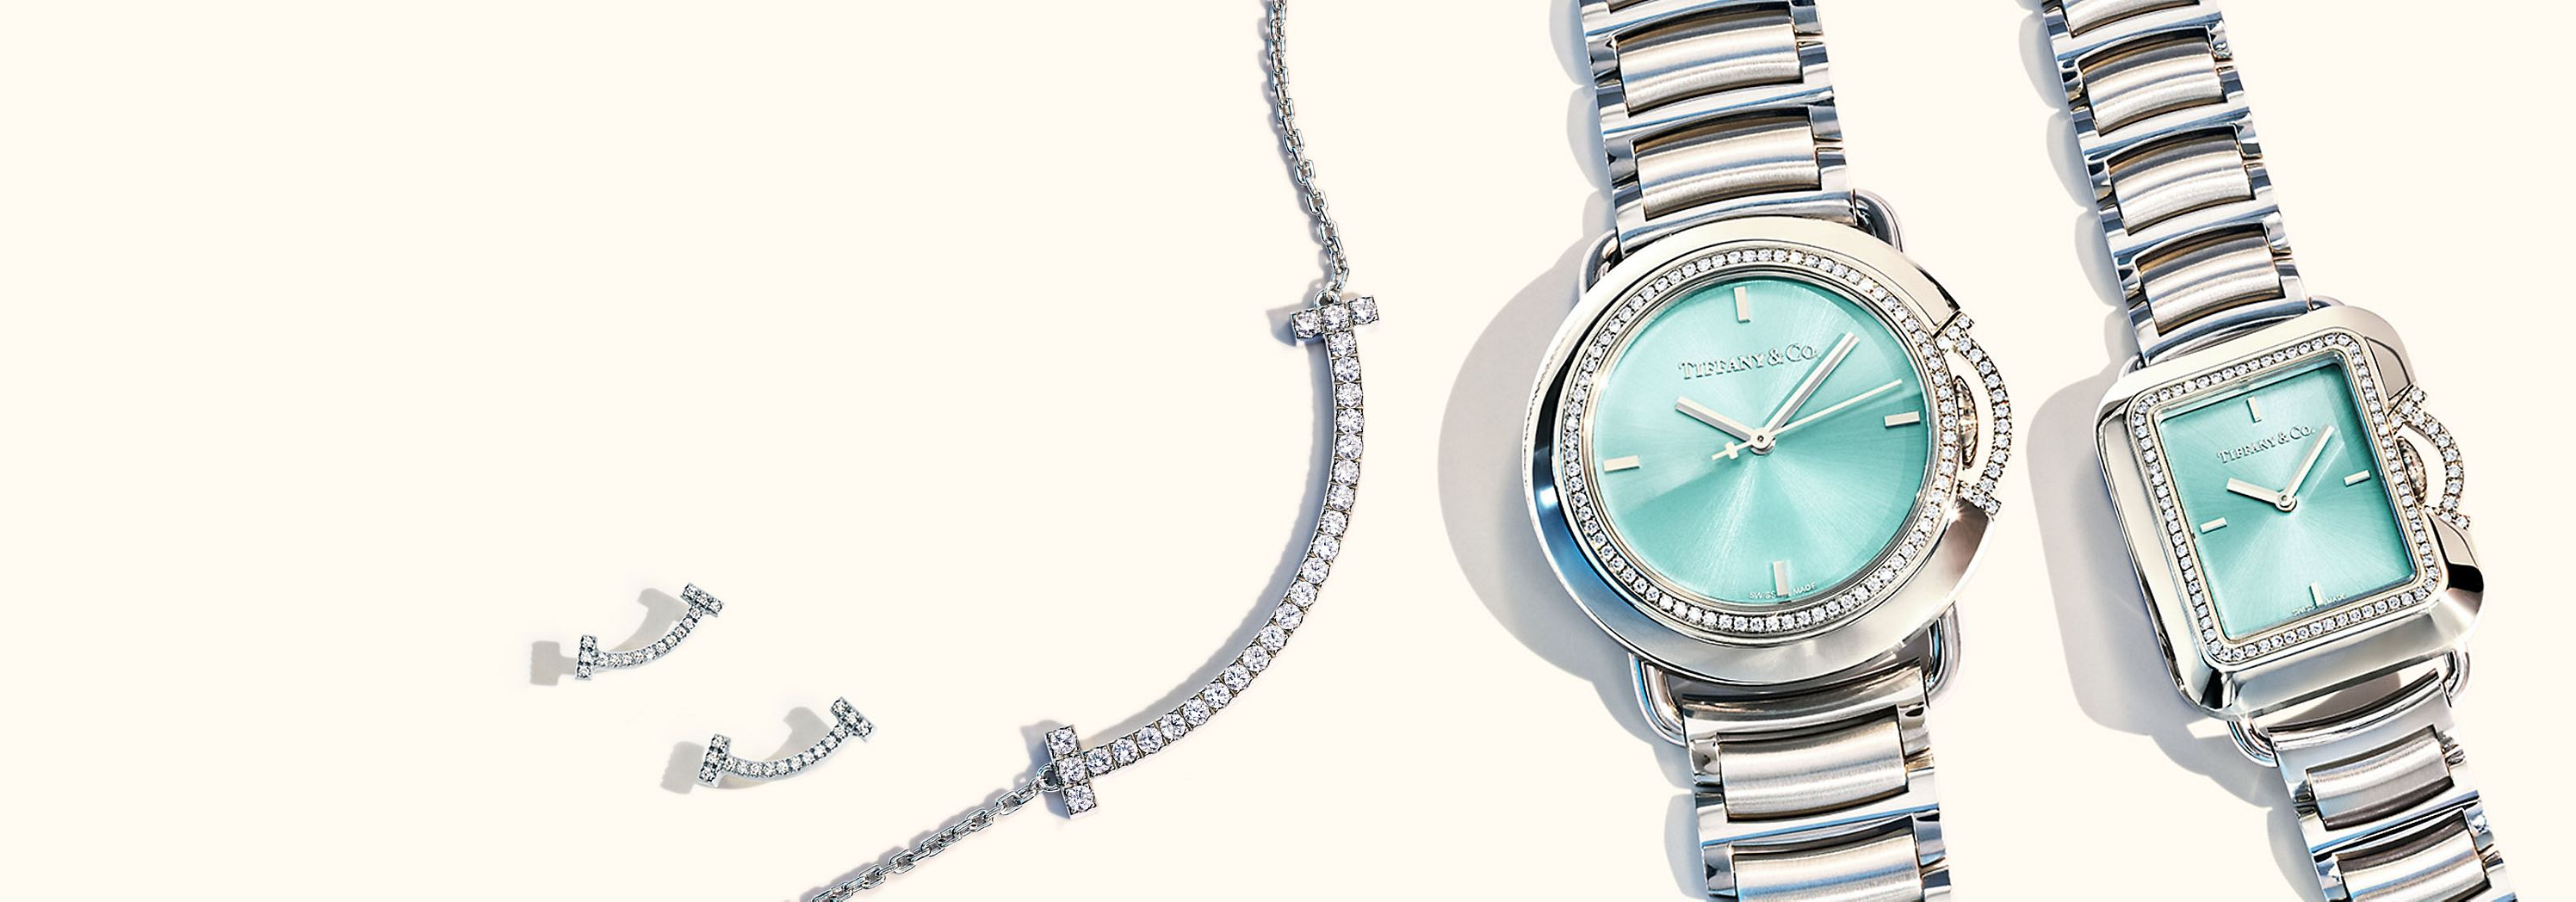 Relojes Tiffany T de Tiffany & Co.